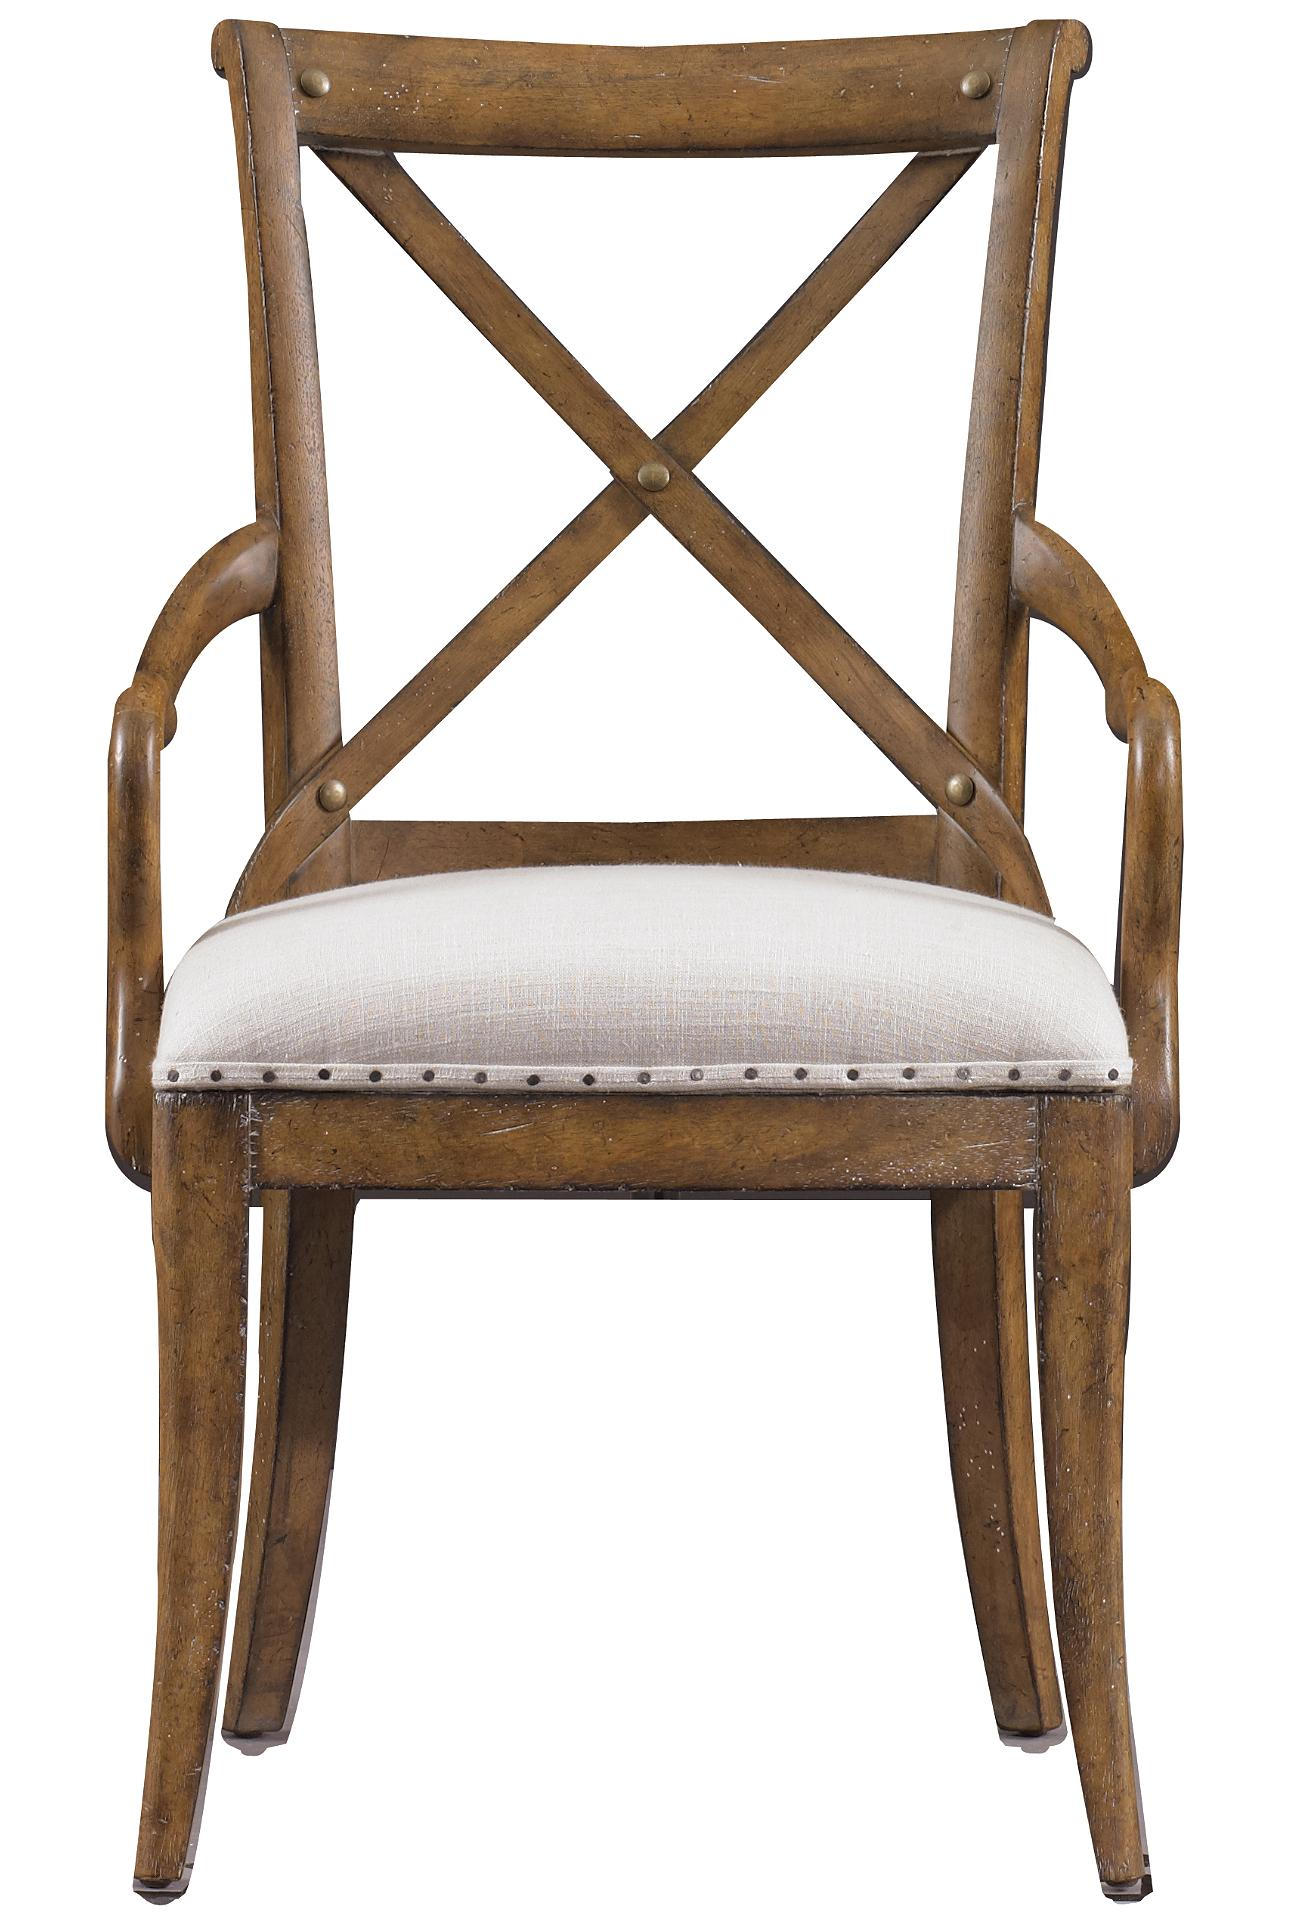 Stanley Furniture European Farmhouse Fairleigh Fields Host Chair - Item Number: 018-61-70